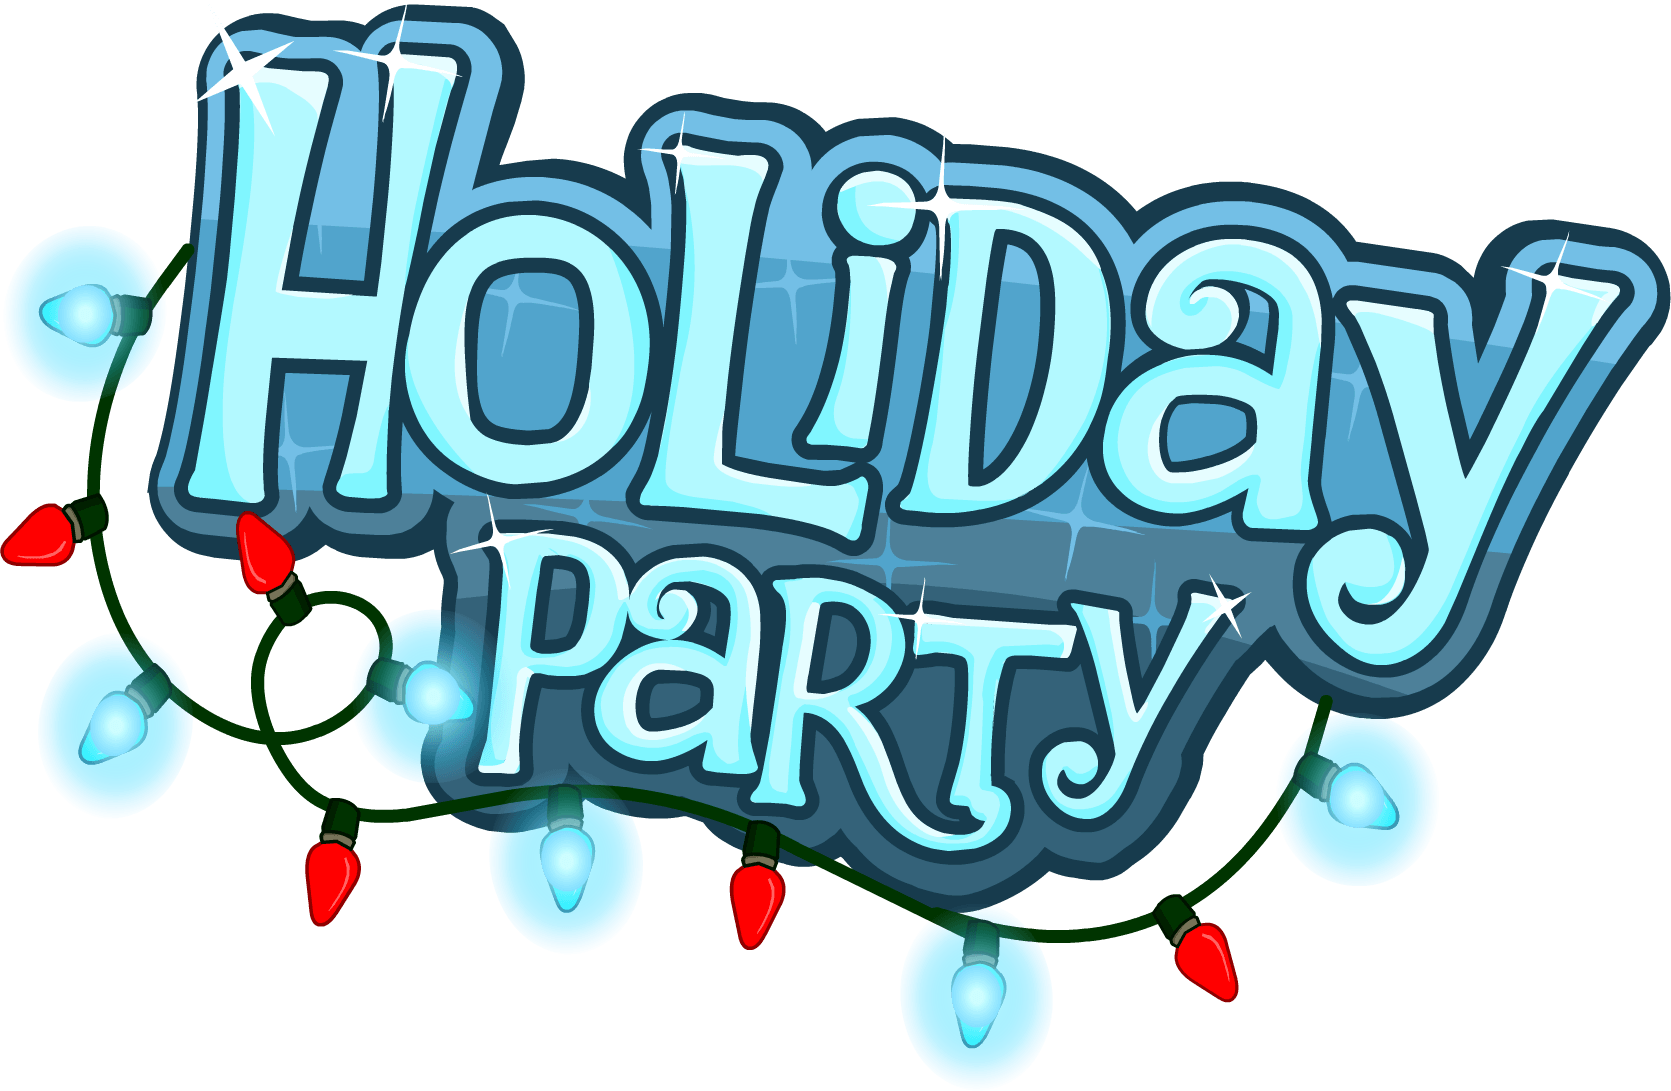 Holiday party celebration time. Clipart winter festival